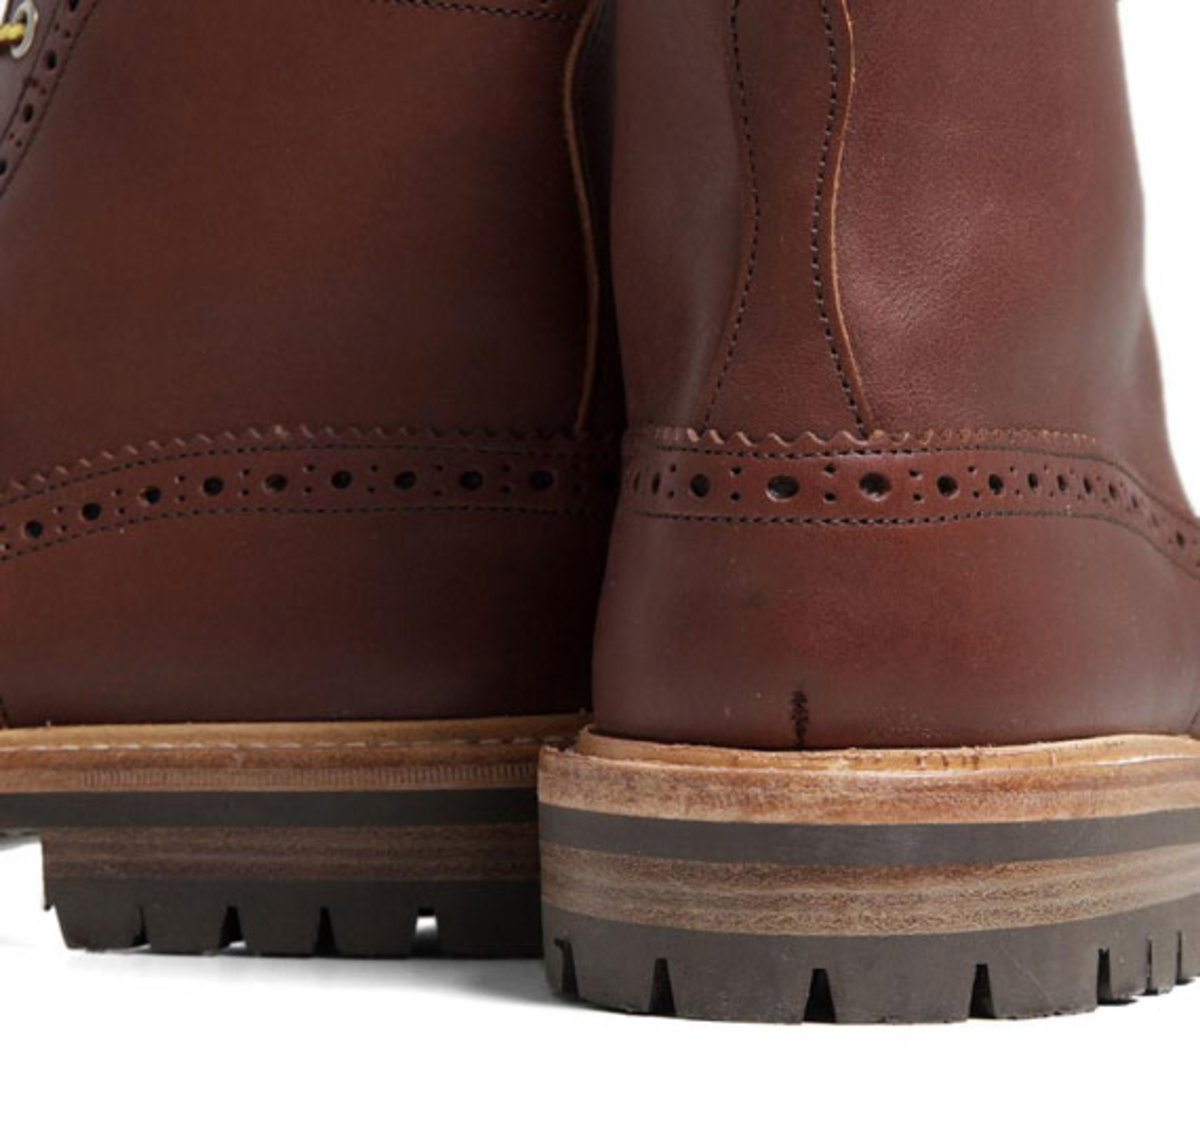 trickers-for-end-stow-brogue-derby-boot-15